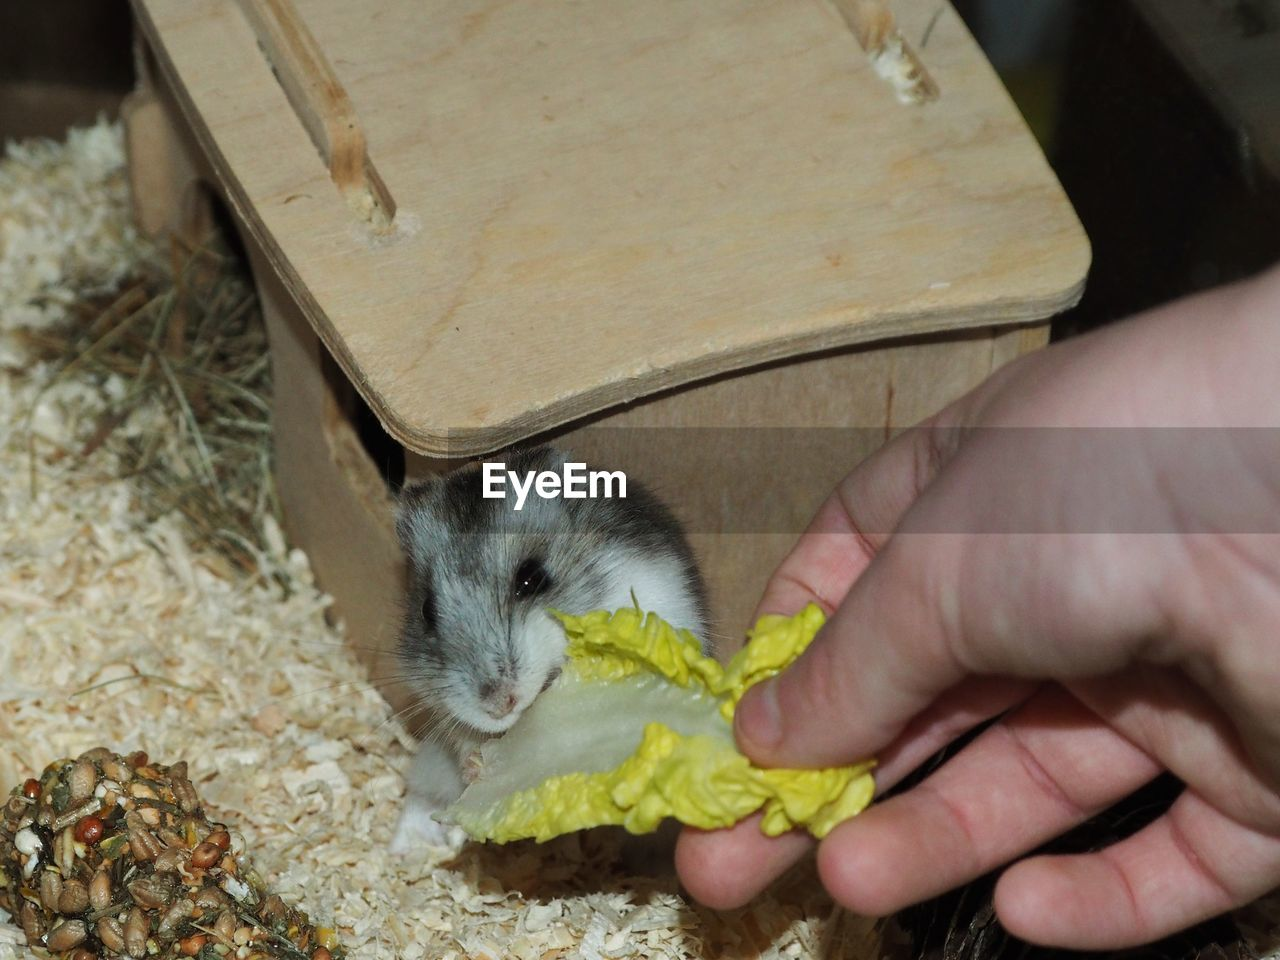 one animal, human hand, hand, mammal, domestic, pets, one person, real people, human body part, domestic animals, holding, vertebrate, eating, unrecognizable person, animal wildlife, rodent, food, finger, pet owner, care